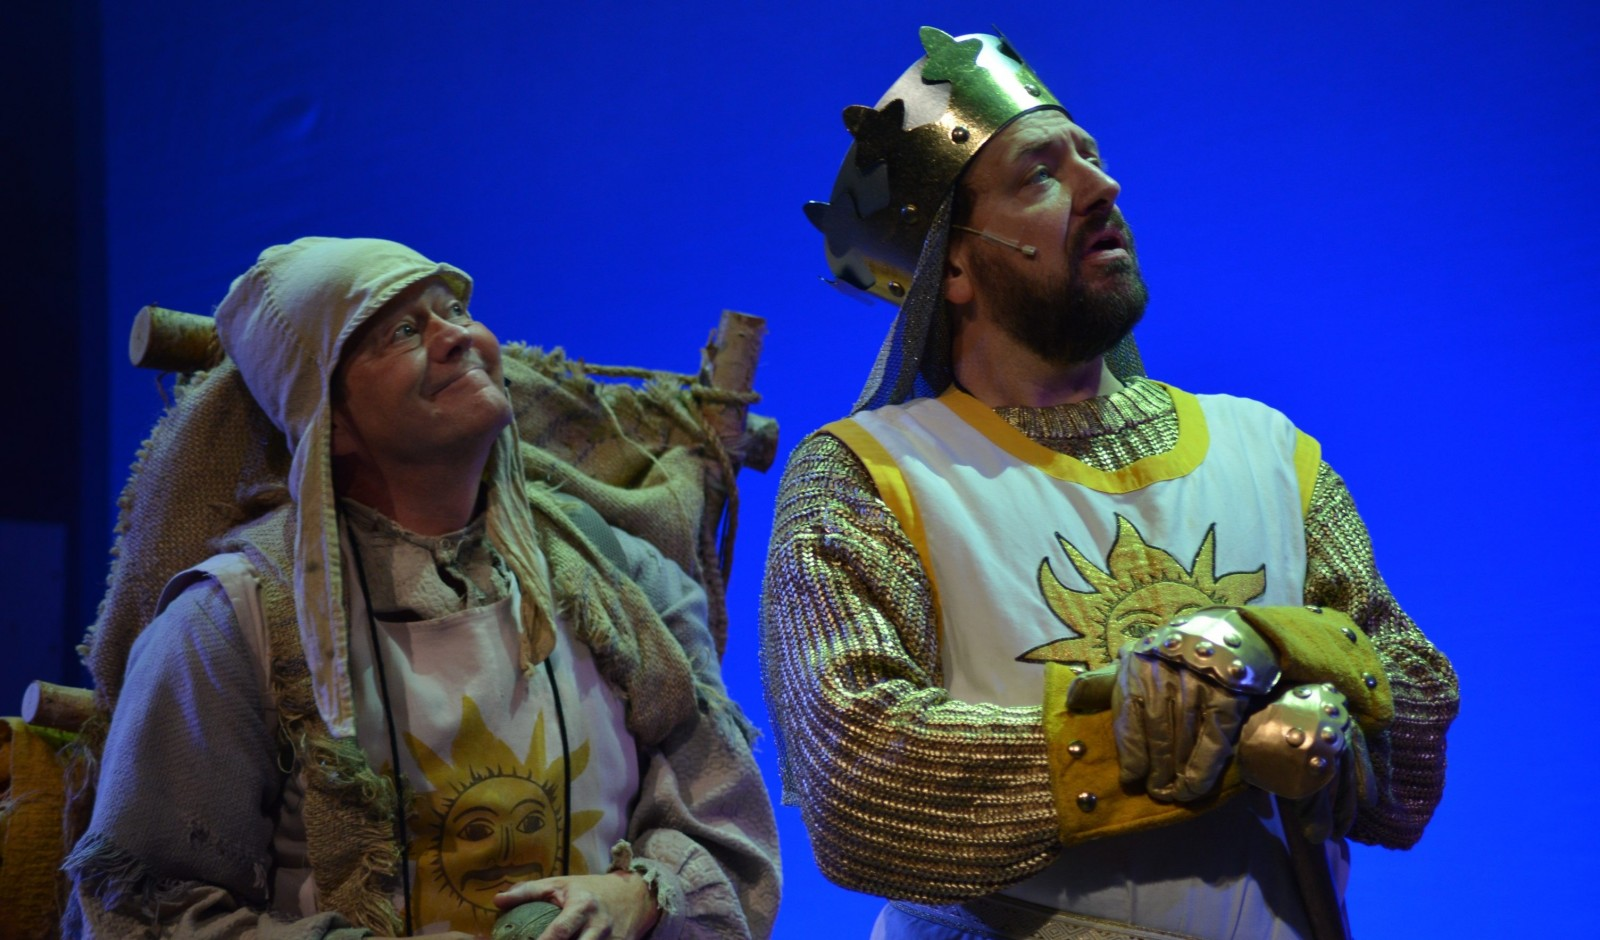 Scot Kaitanowski and Thomas LaChiusa are featured in the Lancaster Opera House's production of 'Spamalot.'